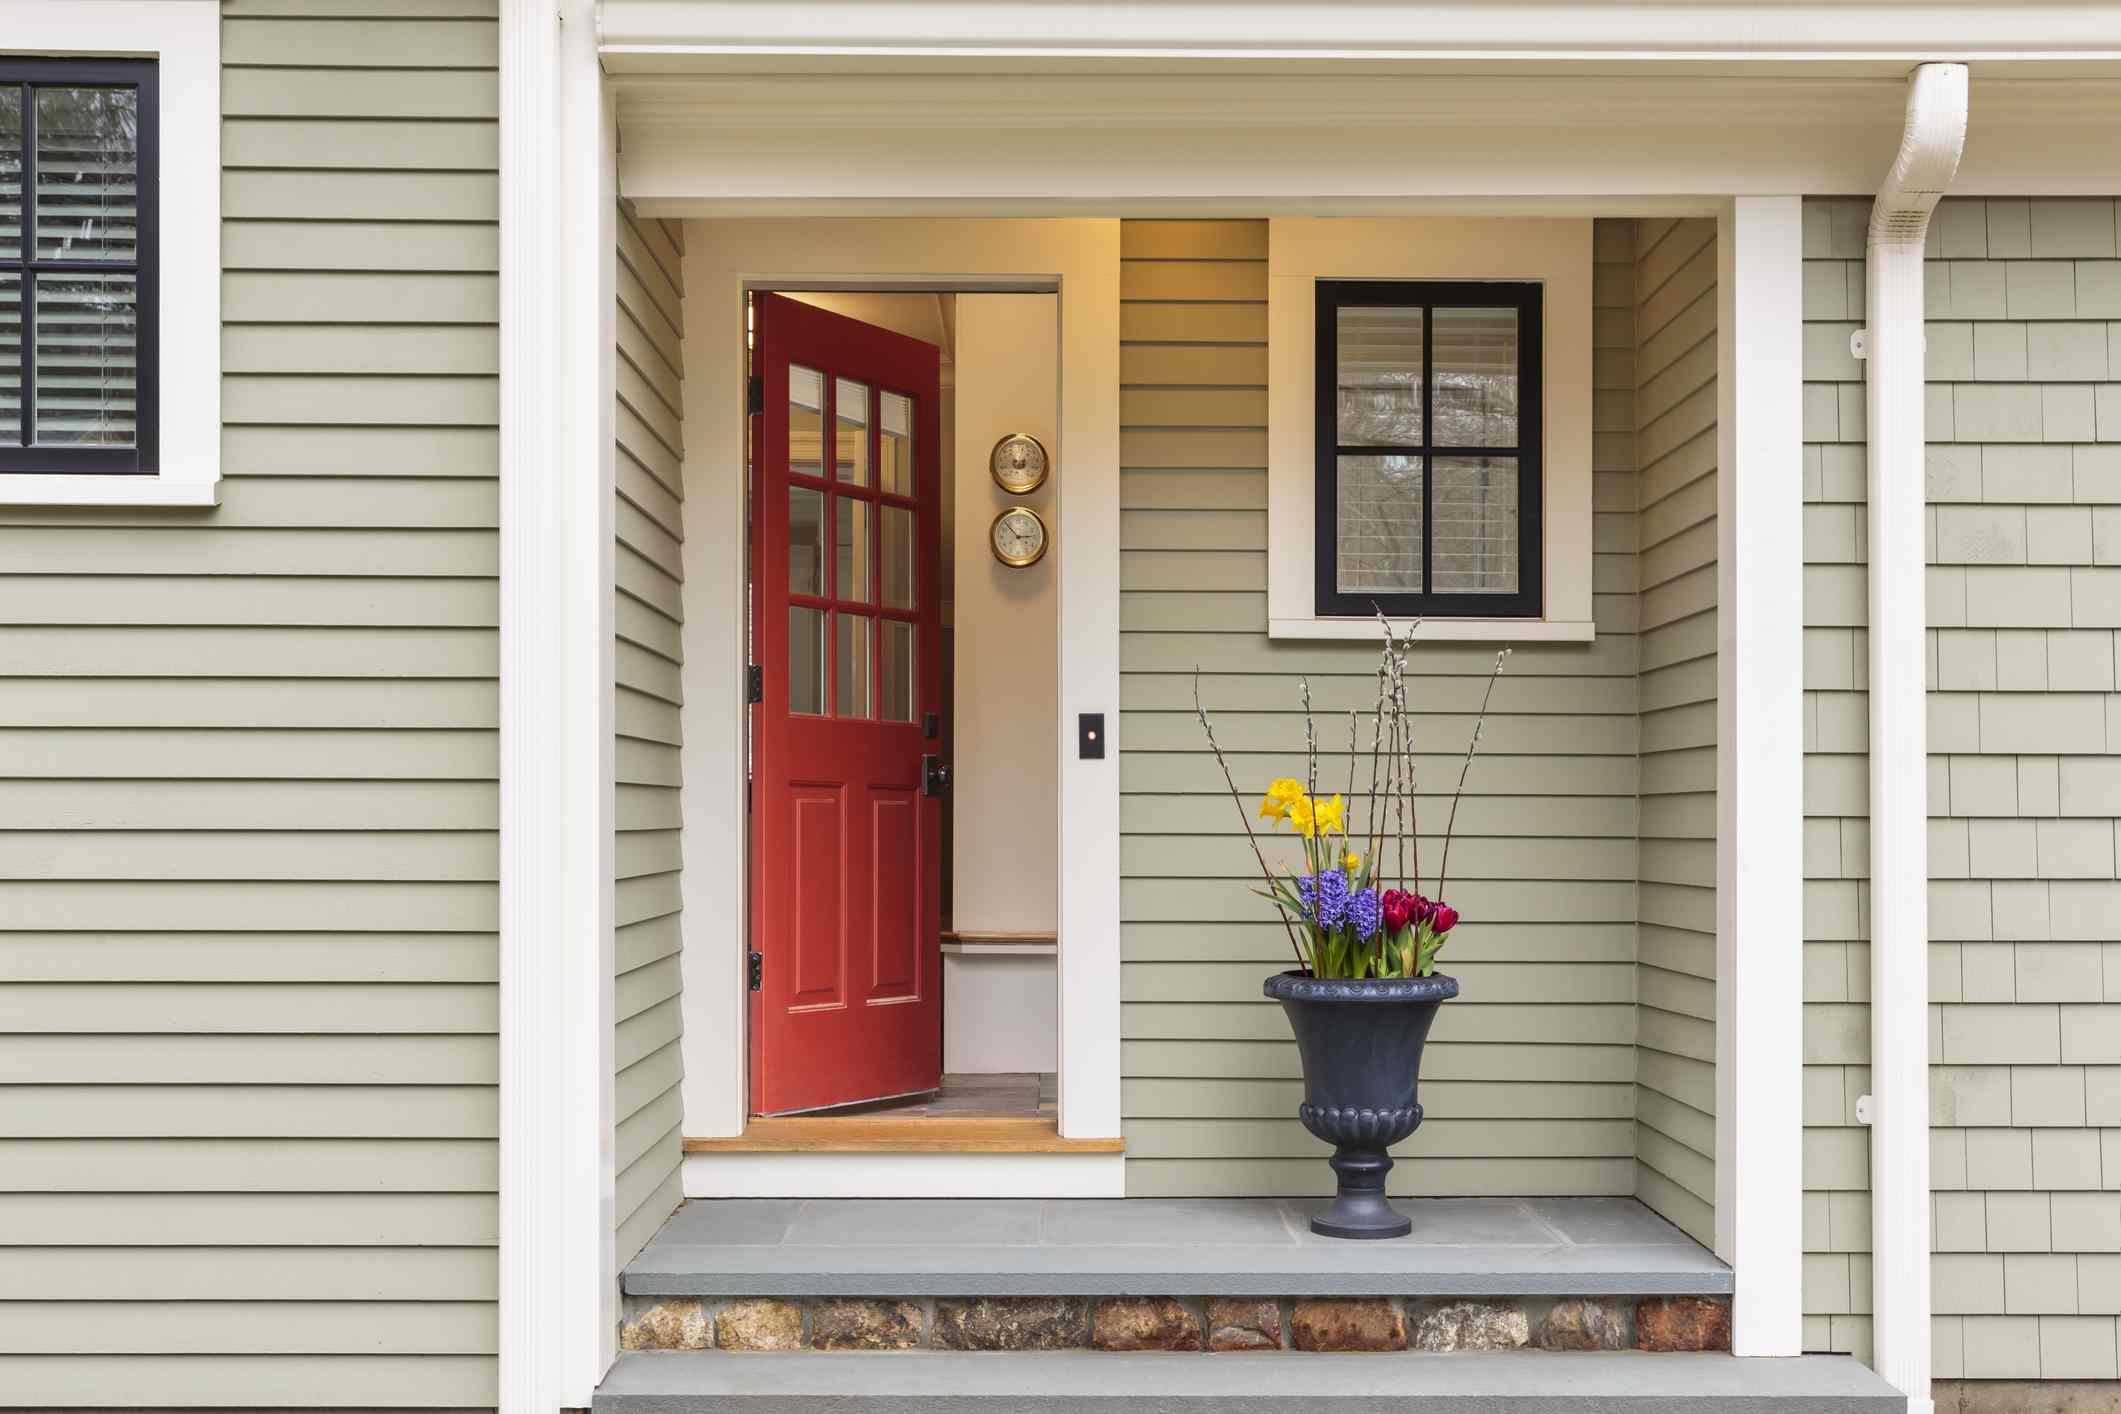 inviting entry to a home with a red door and flowers